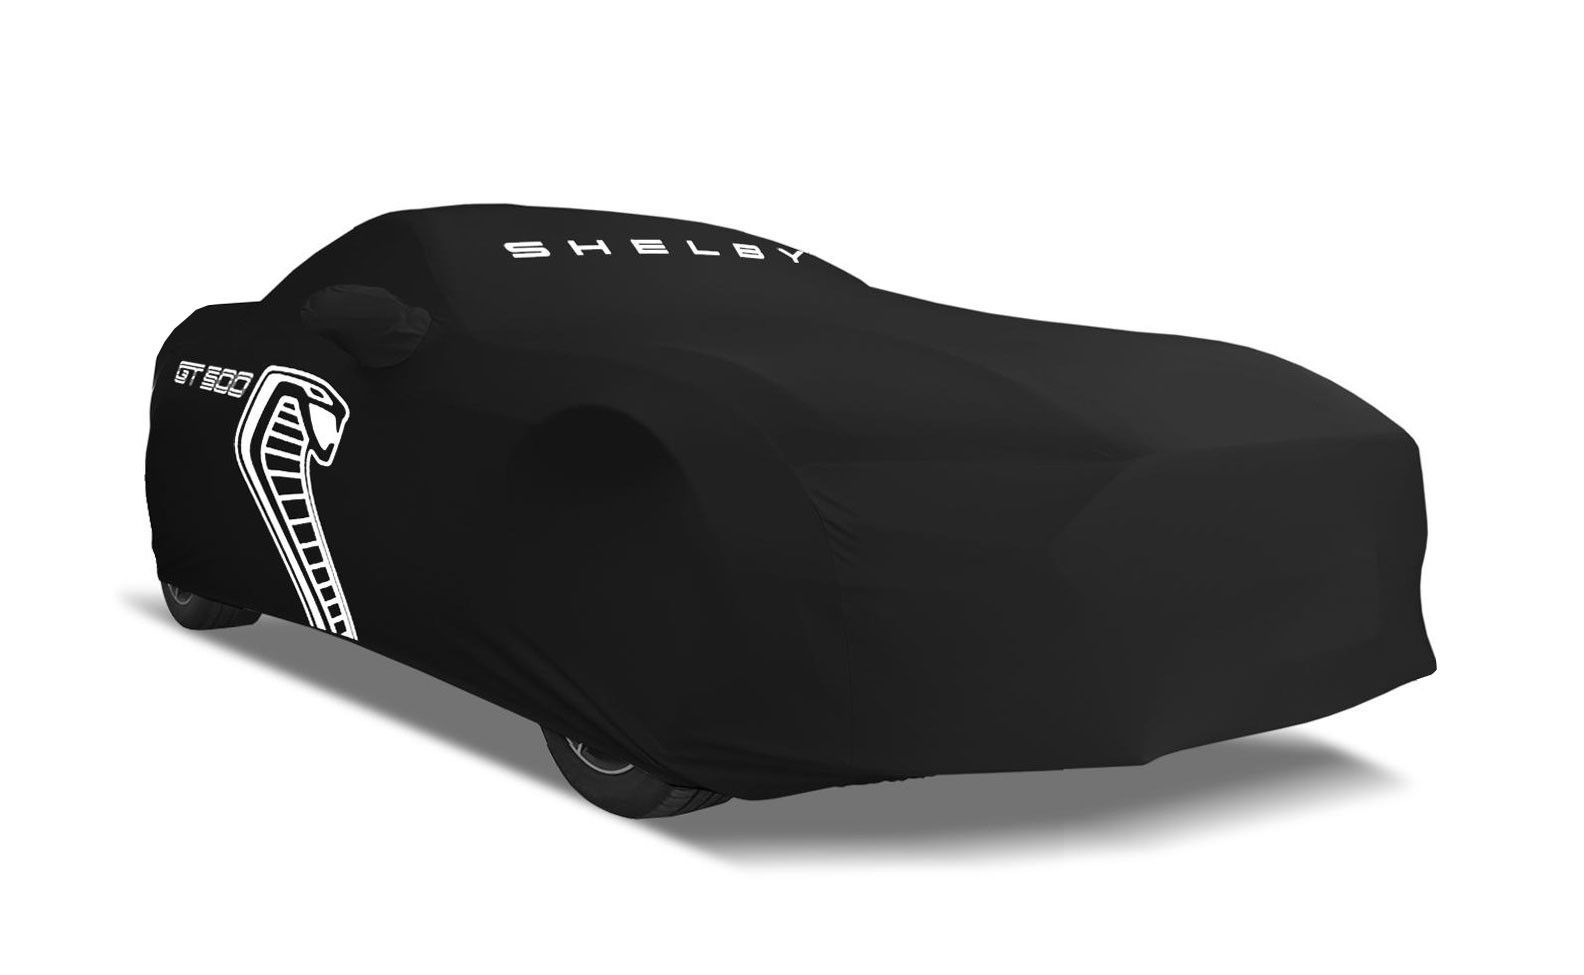 2020 Shelby GT500 Genuine Ford OEM Black Stormproof Outdoor Car Cover w/ Cobra Logo